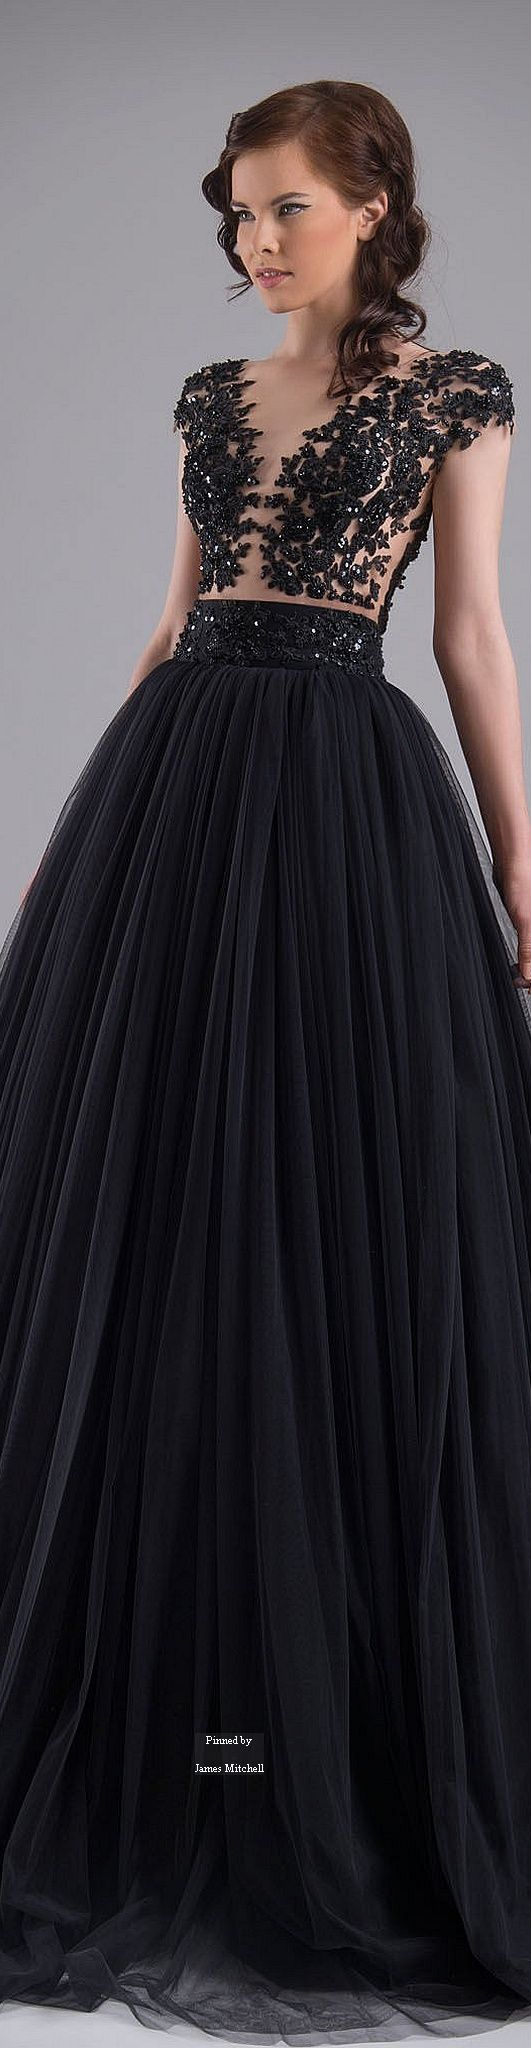 Chrystelle Atallah ~ Couture Black Embroidered Bodice Gown with High Waist Pleated Full Skirt Summer 2015